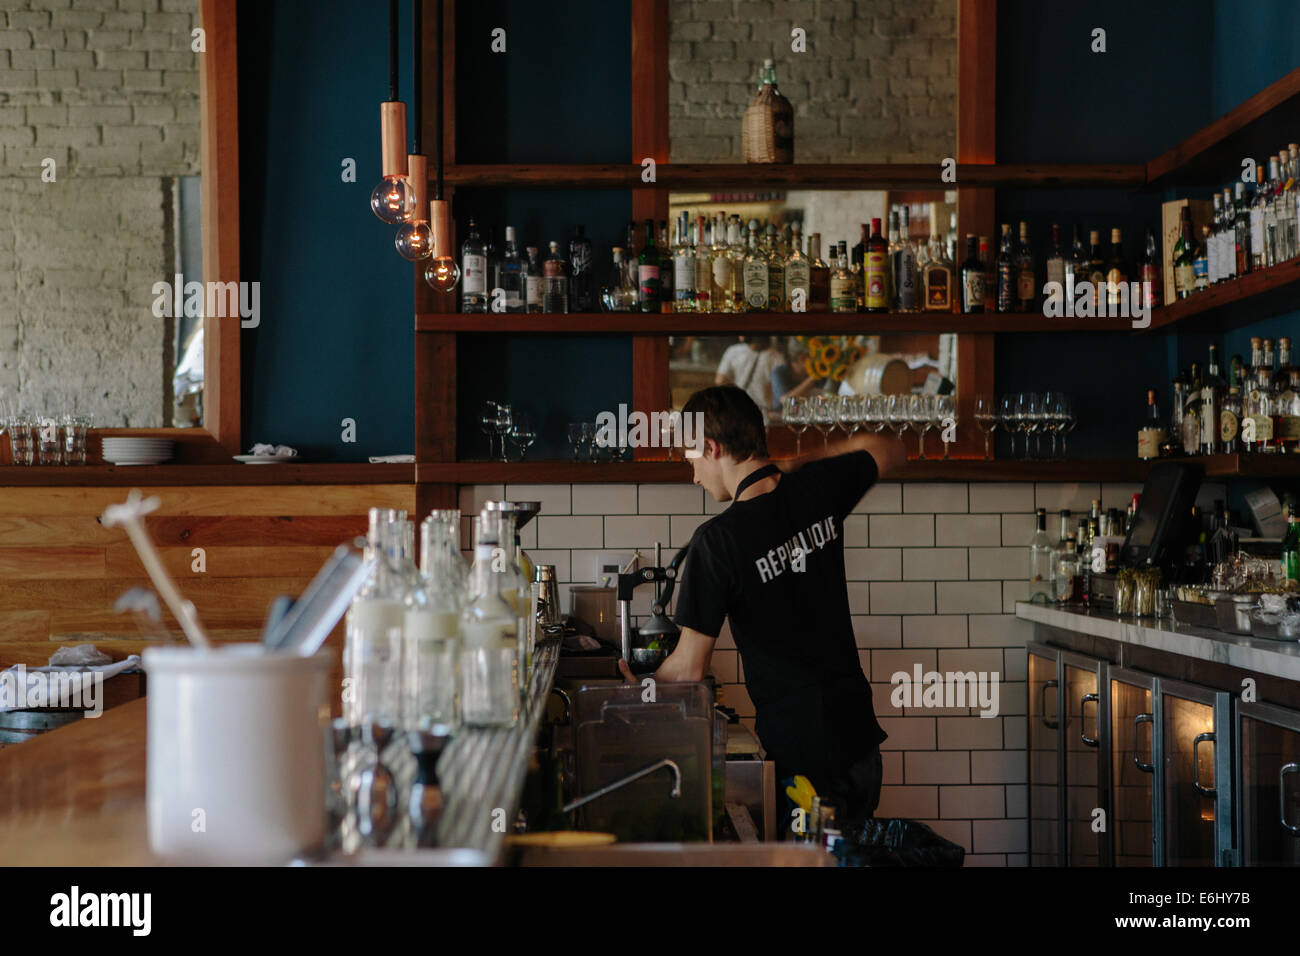 Bartender rinsing glasses at high end restaurant in Los Angeles. - Stock Image